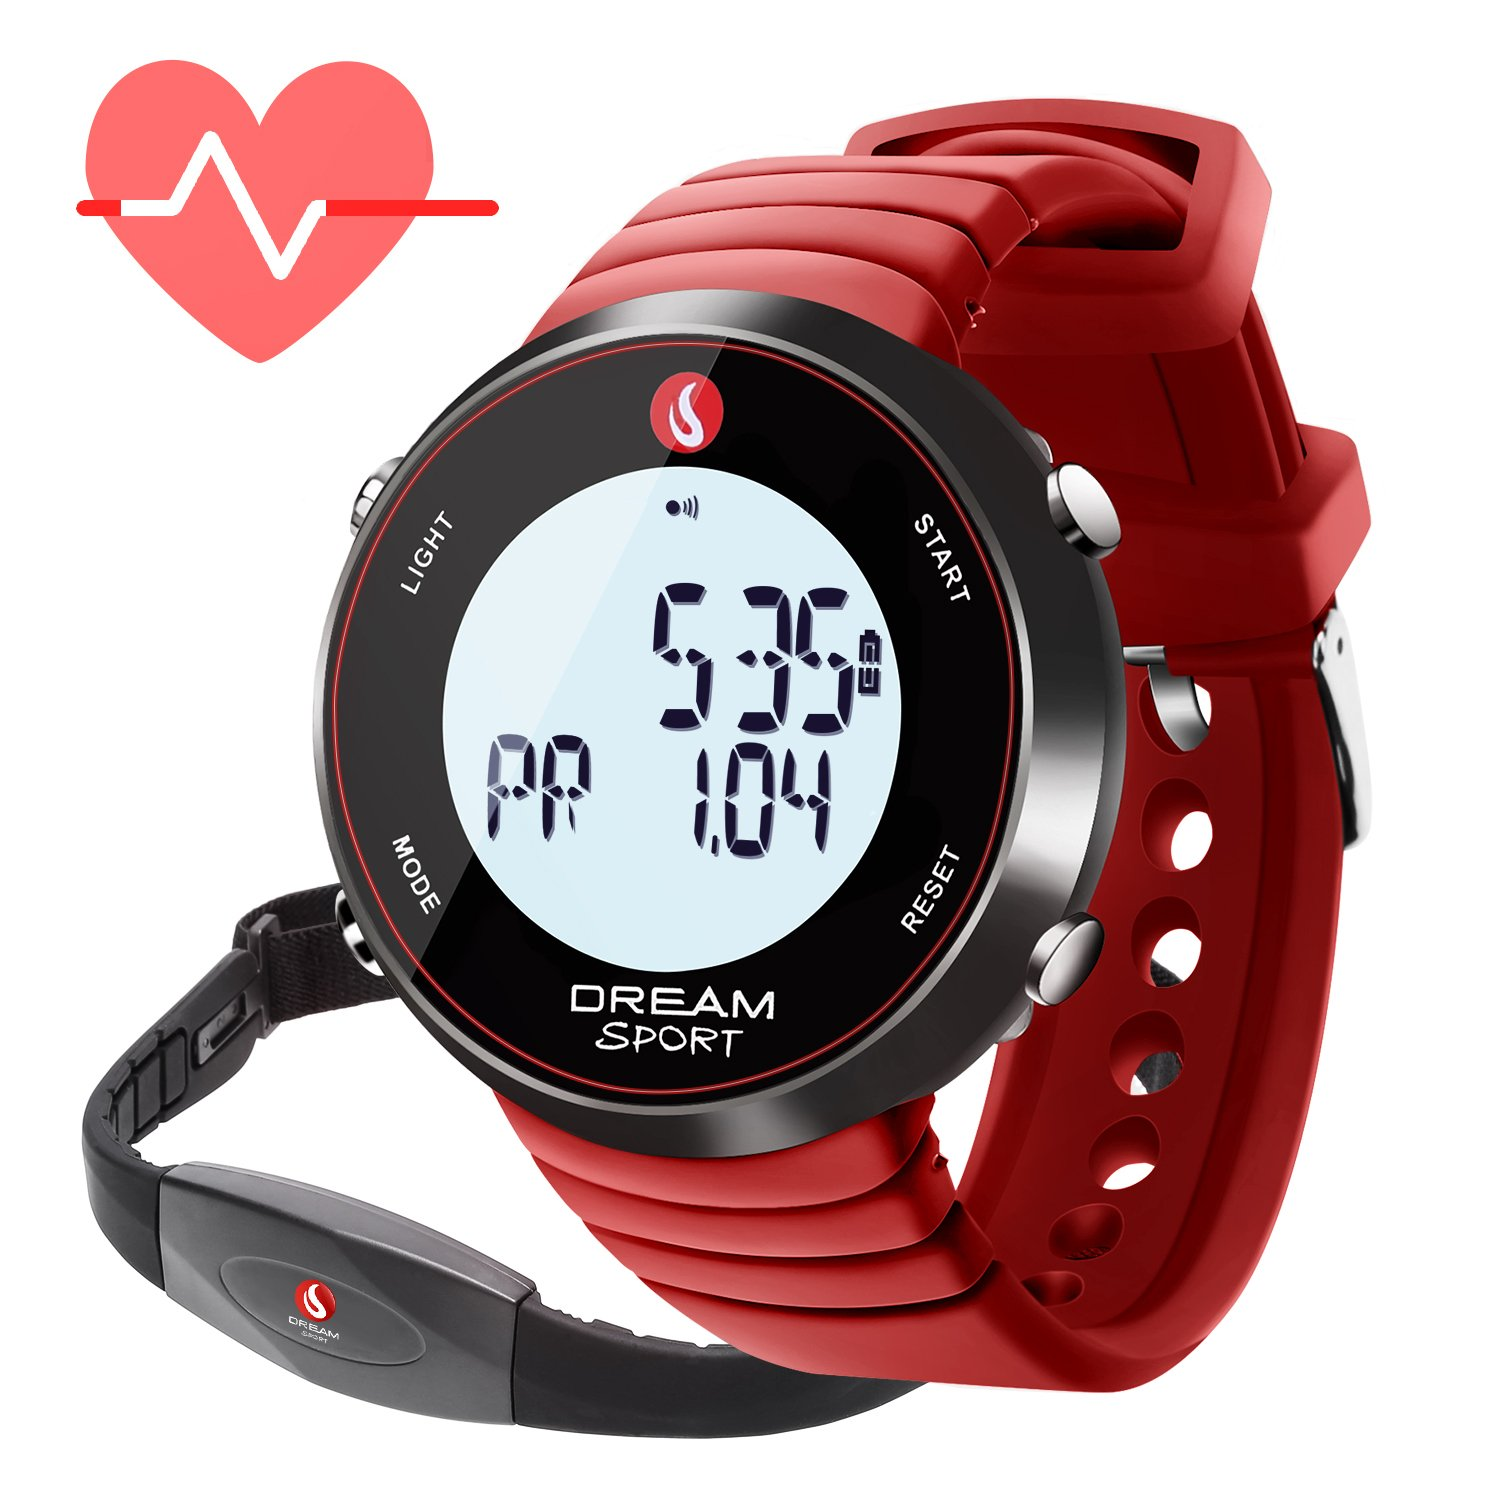 dreamsport Fitness Tracker, Heart Rate Monitor Watch with Chest Strap and Stopwatch/Alarm/Calorie Counter/7 Days Memory/BMI/30M Water Resistant (088-Red)